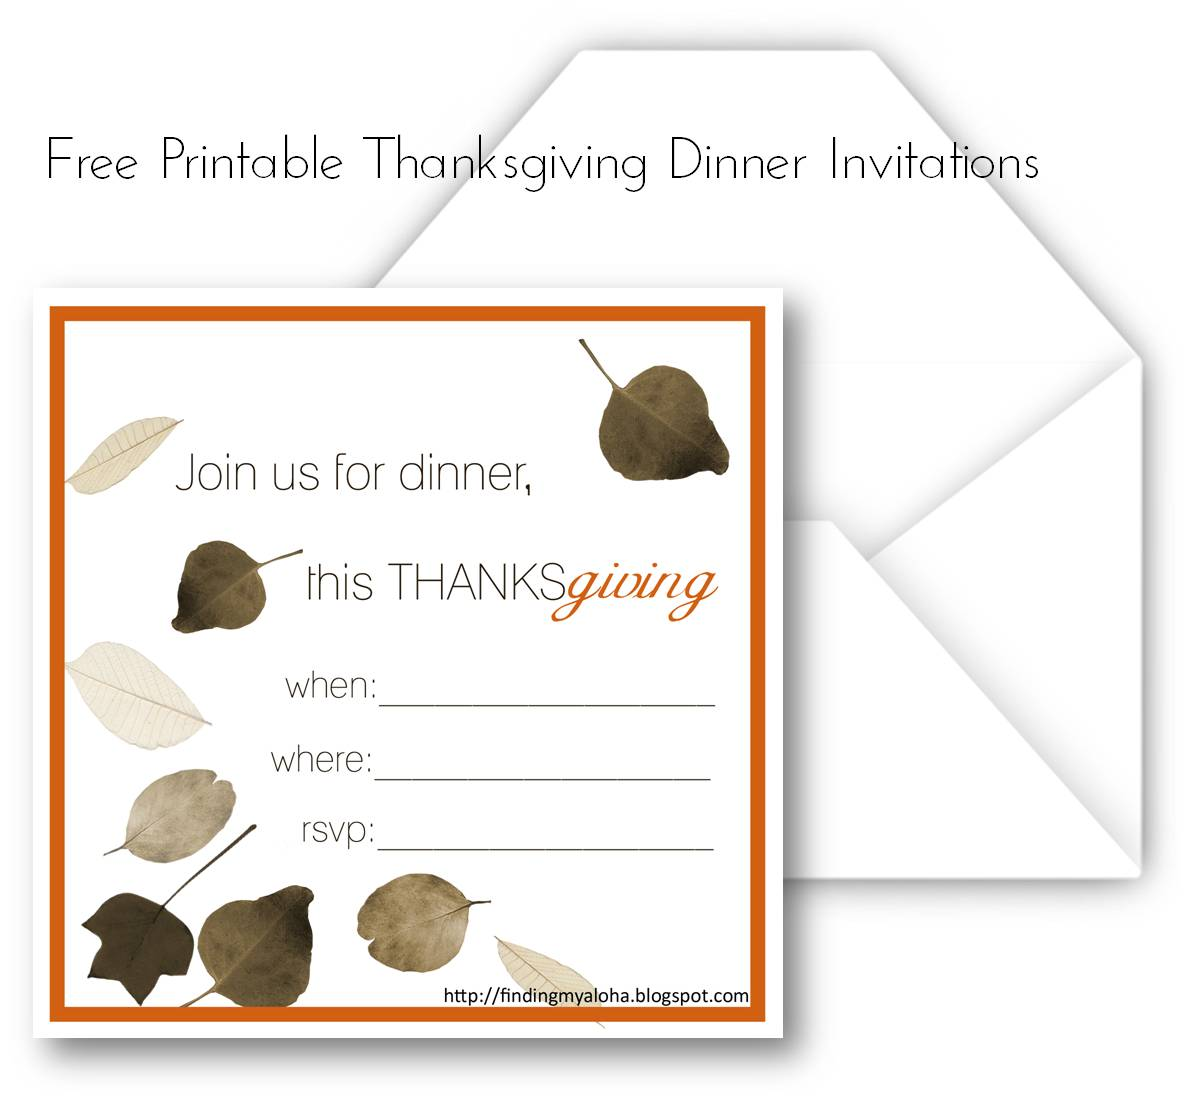 thanksgiving invitation templates free word 400 x 368 640 x 589 1197 x 1103